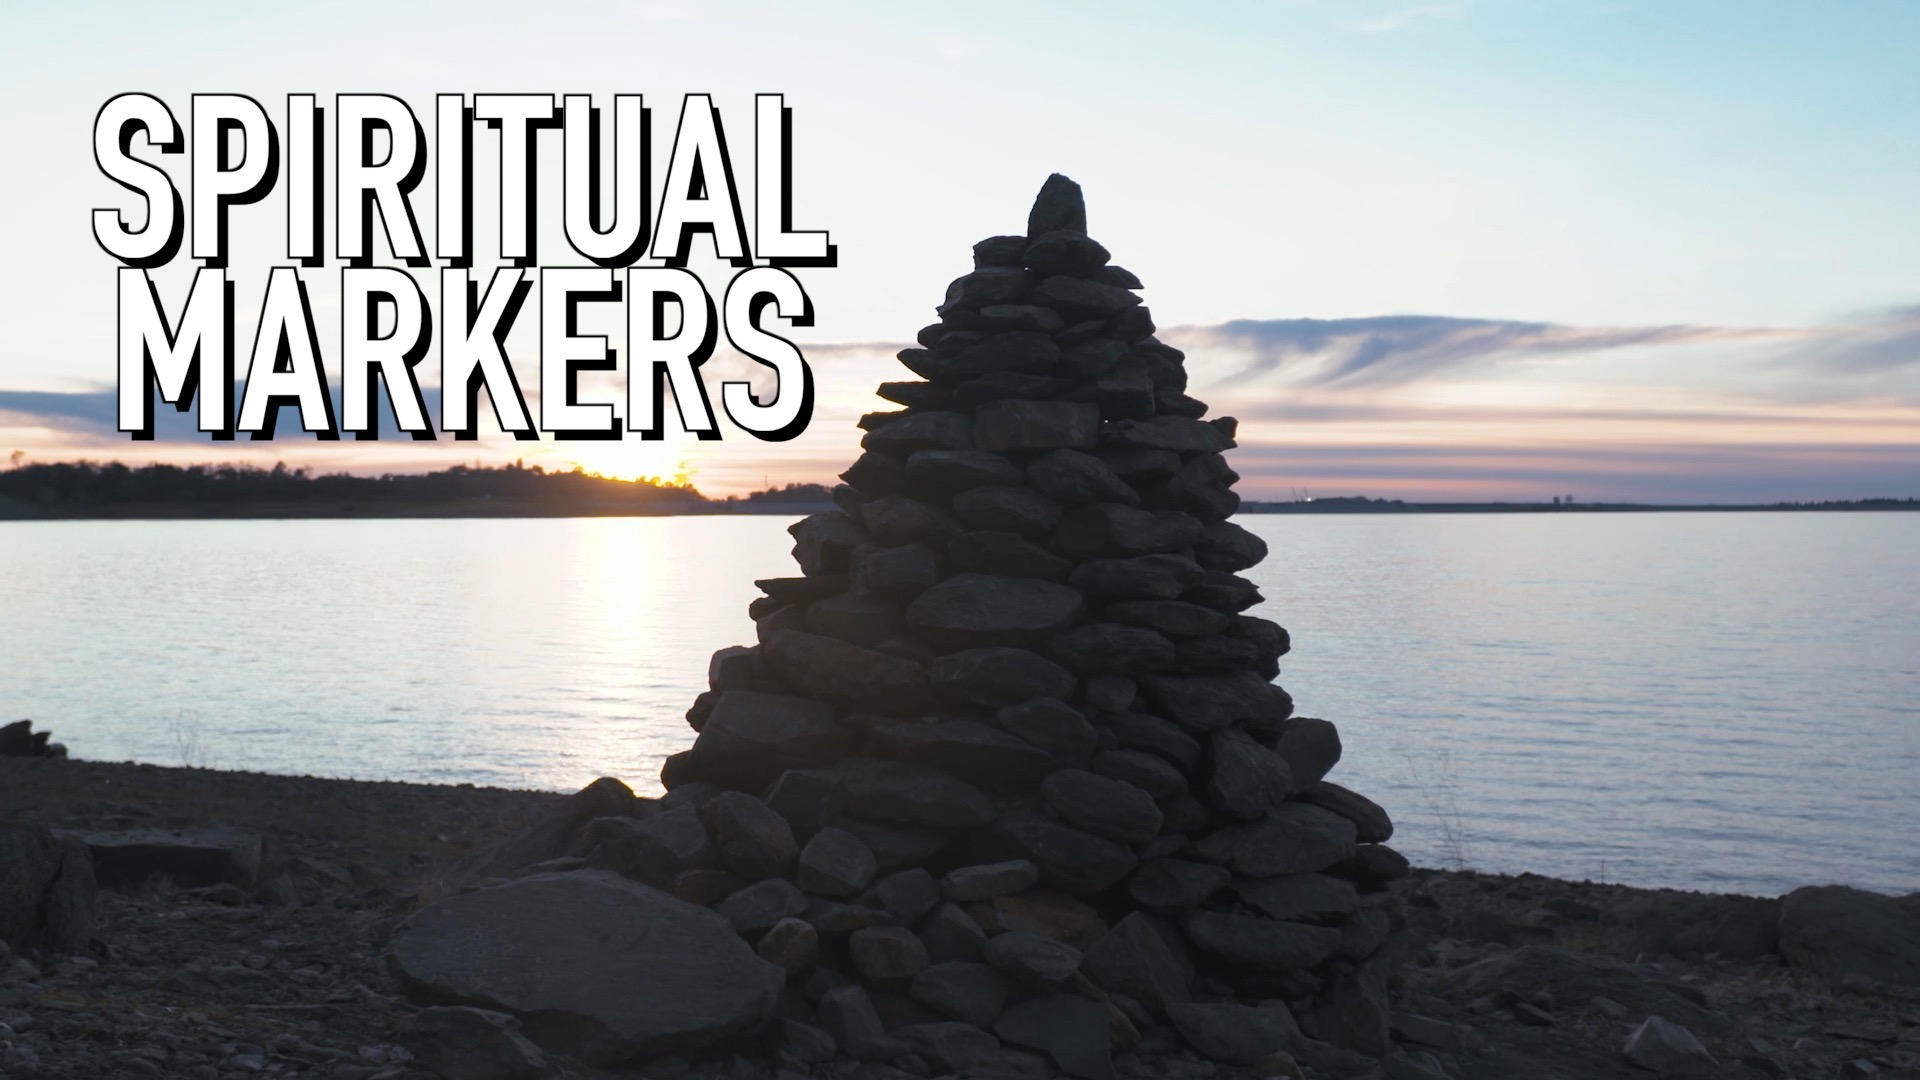 Spiritual Markers - All of us have monumental divine moments when God left His mark on our lives. We tend to forget those moments over time. In this series, Pastor Jamie surveys a few Old Testament stories when God's people were commanded to build a spiritual marker so they would not forget what they learned about Him. Click here to watch the messages from this series.